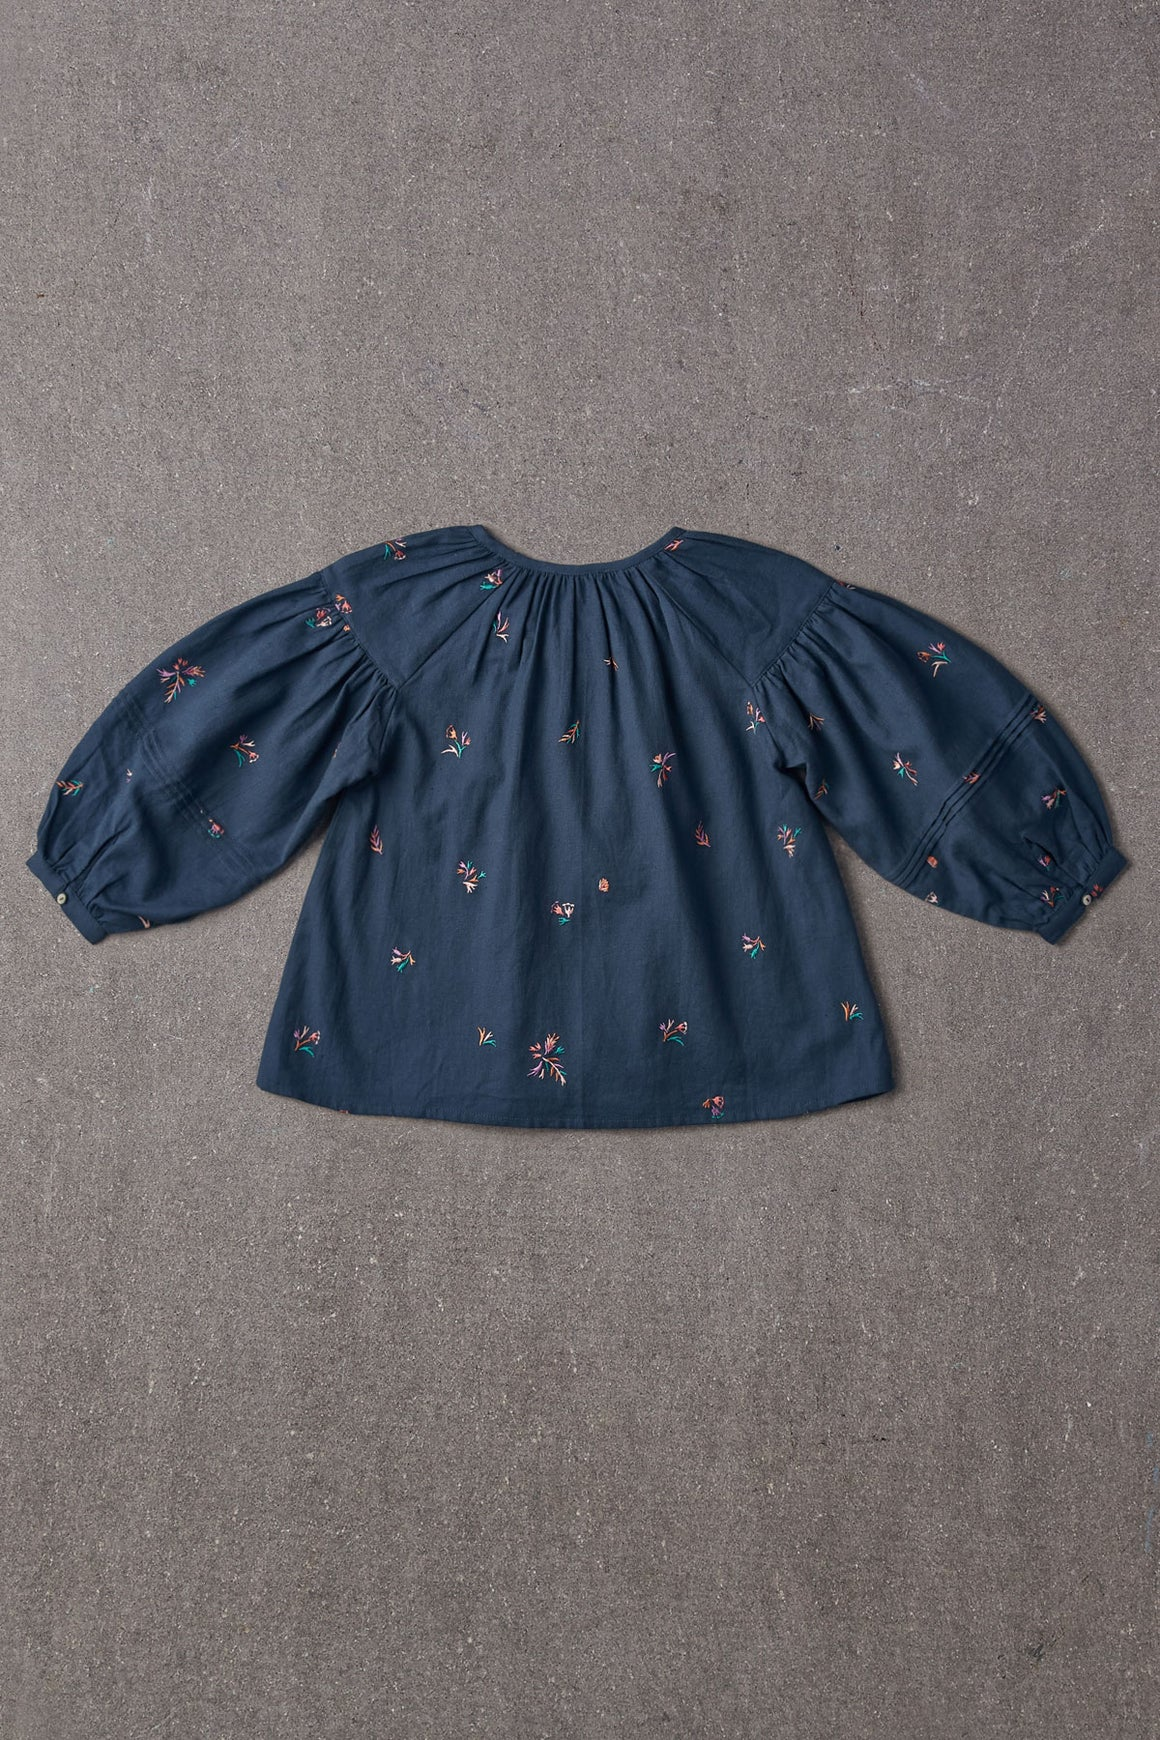 Nellystella Hellena Blouse - Autumn Melody Embroidery